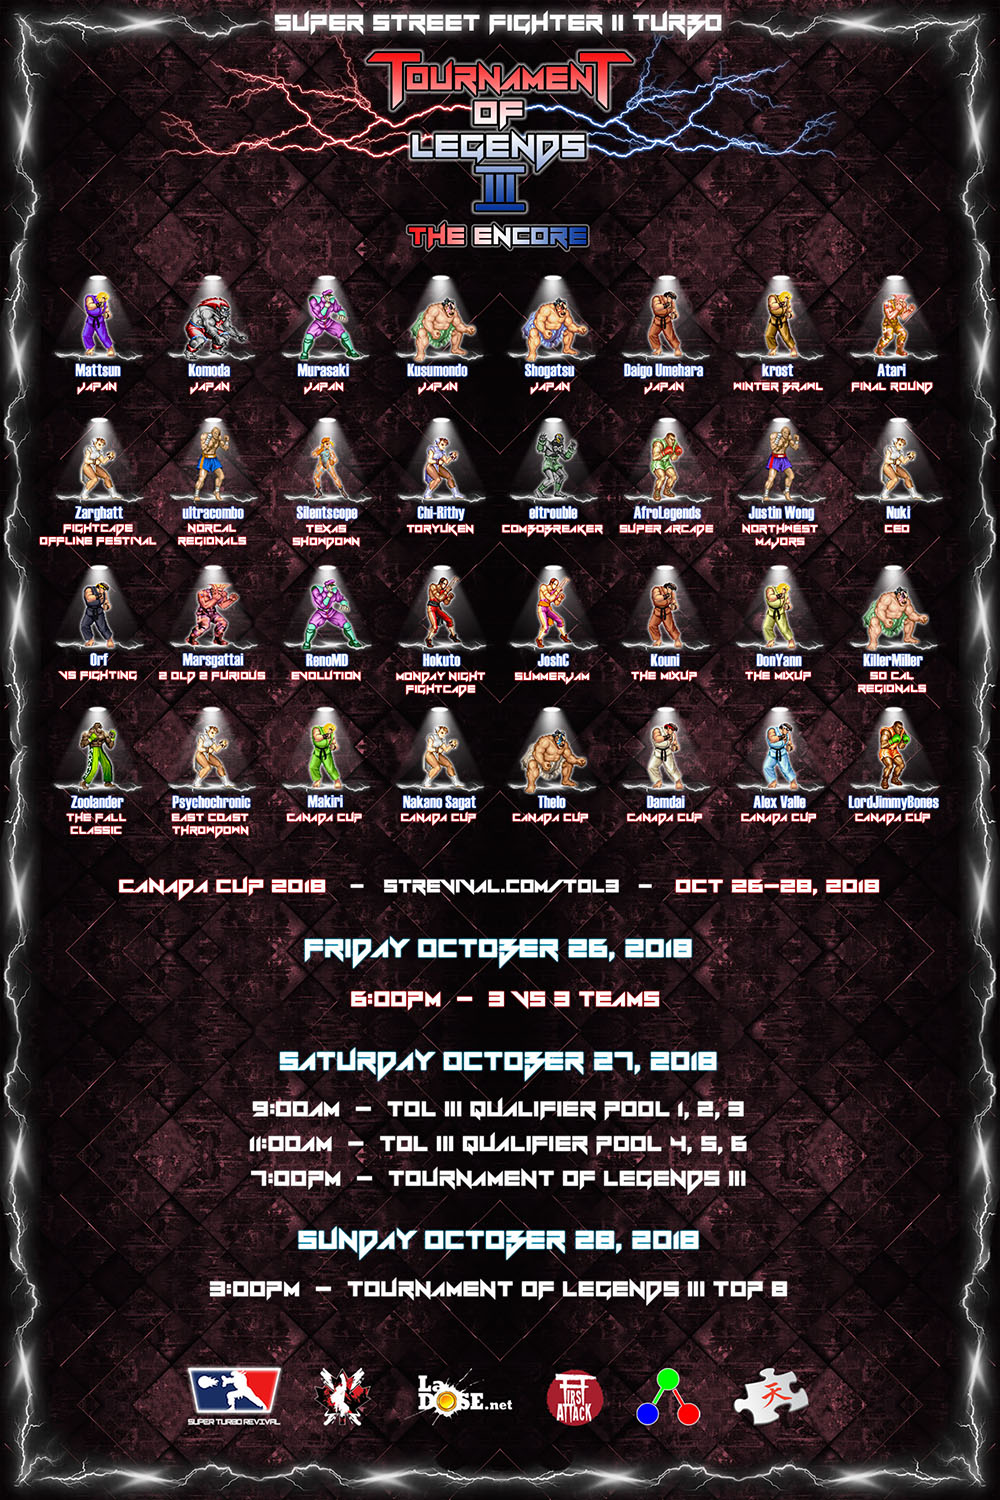 TOURNAMENT OF LEGENDS III poster